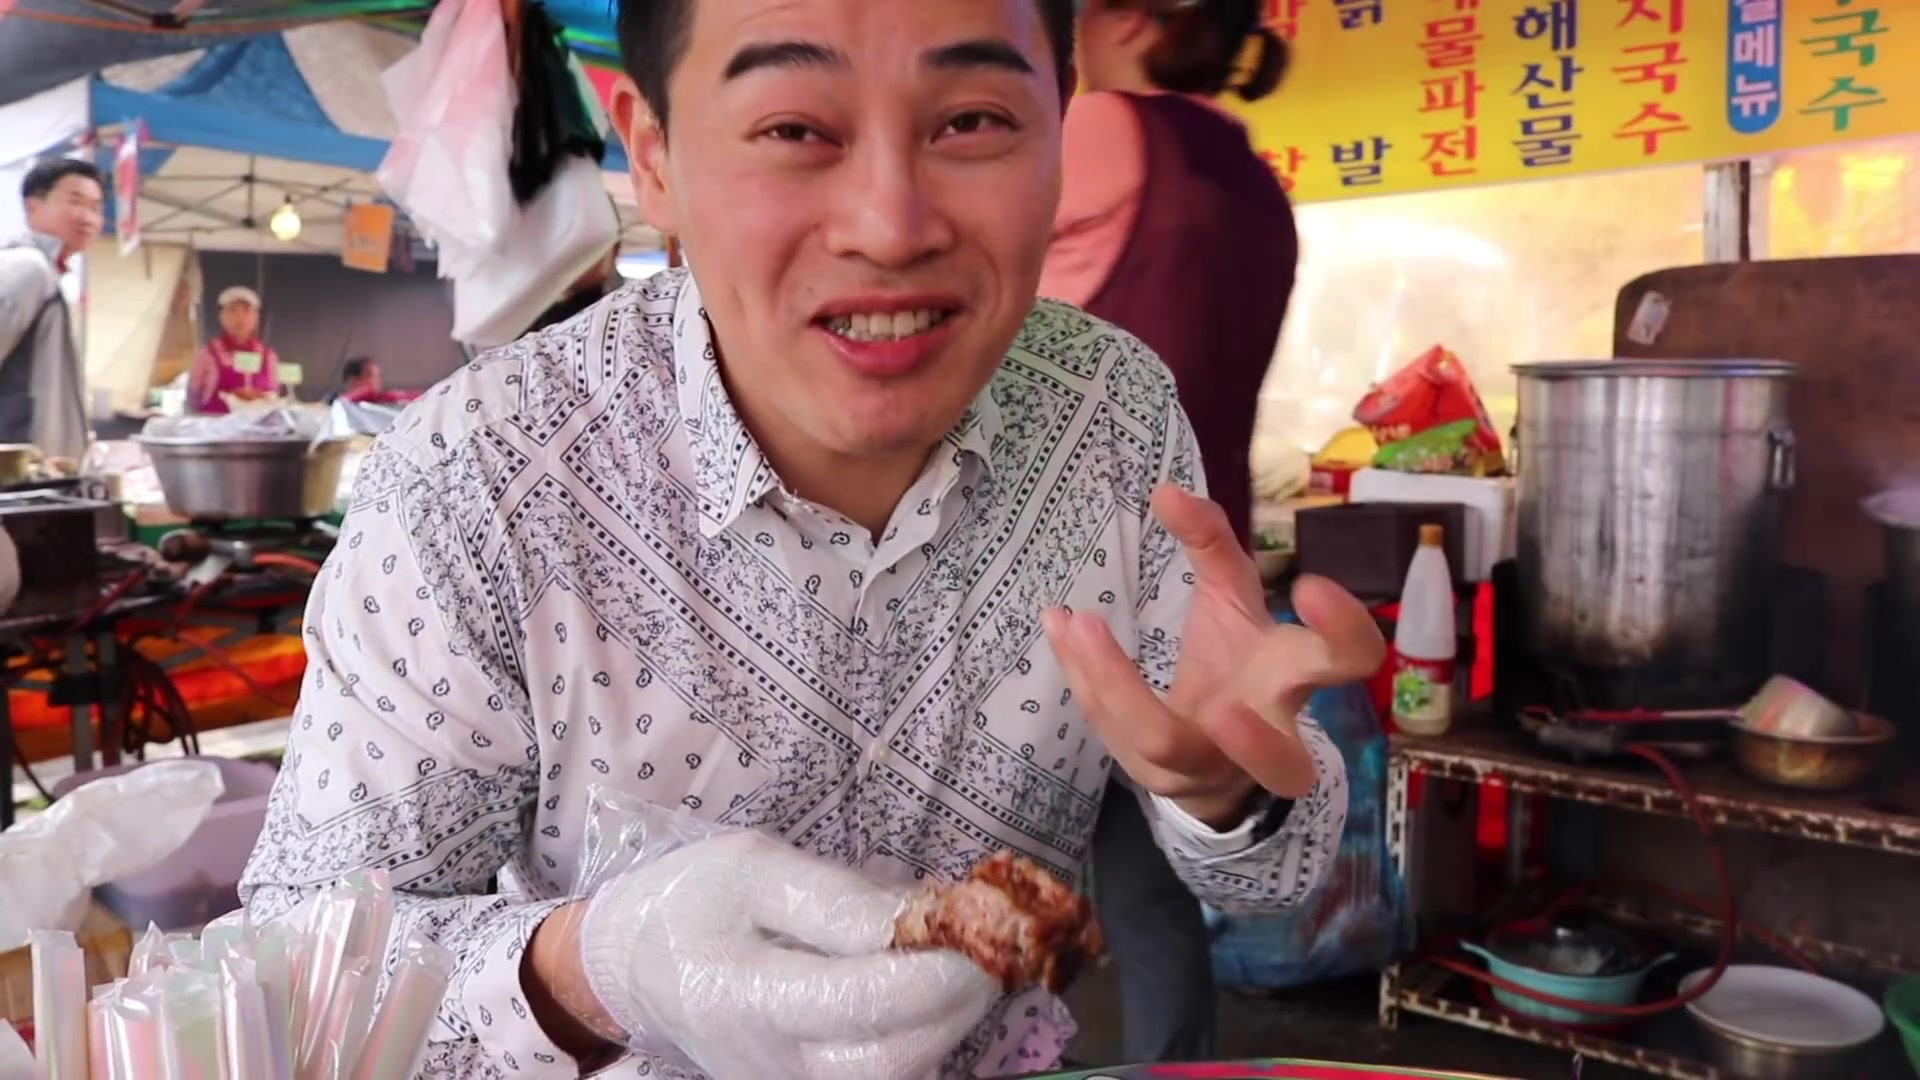 Todo Sobre Corea del Sur Episode 163: Traditional Korean Market Tour: Eating Ox Blood Hangover Soup [Todo Sobre Corea del Sur]